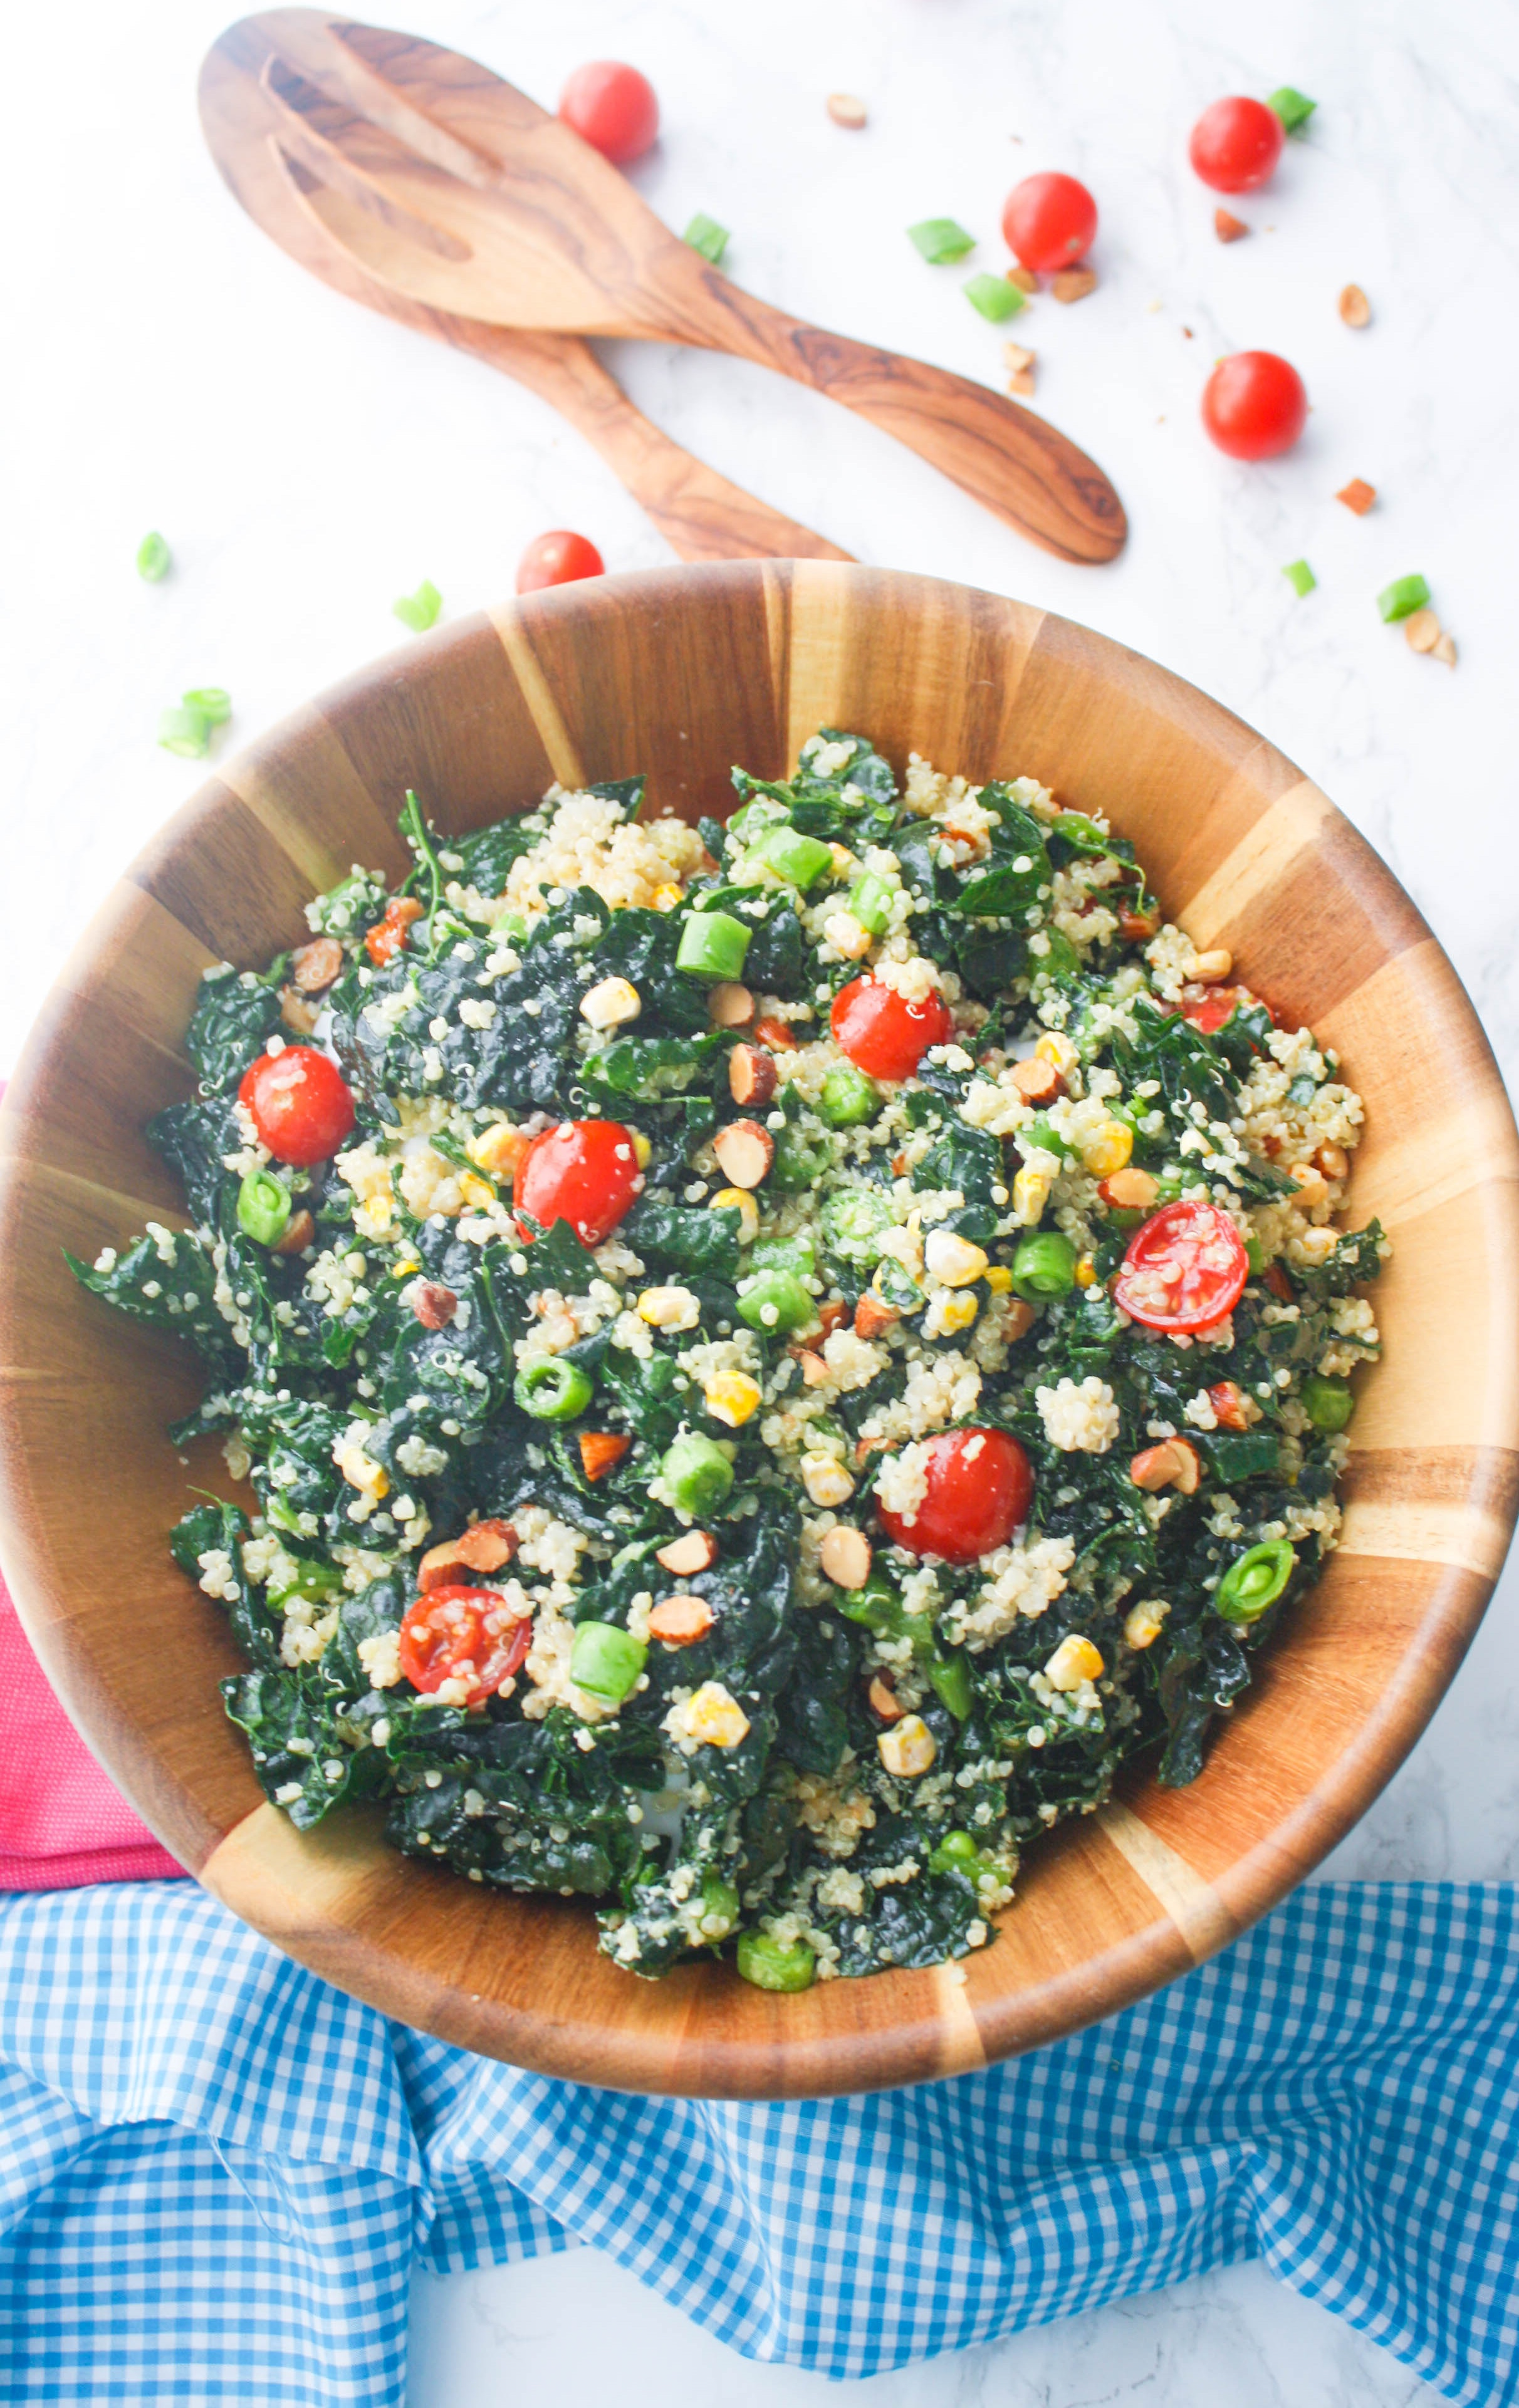 Kale and Quinoa Salad with Honey-Dijon Dressing makes a great addition to any light meal. There are so many great ingredients in Kale and Quinoa Salad with Honey-Dijon Dressing!